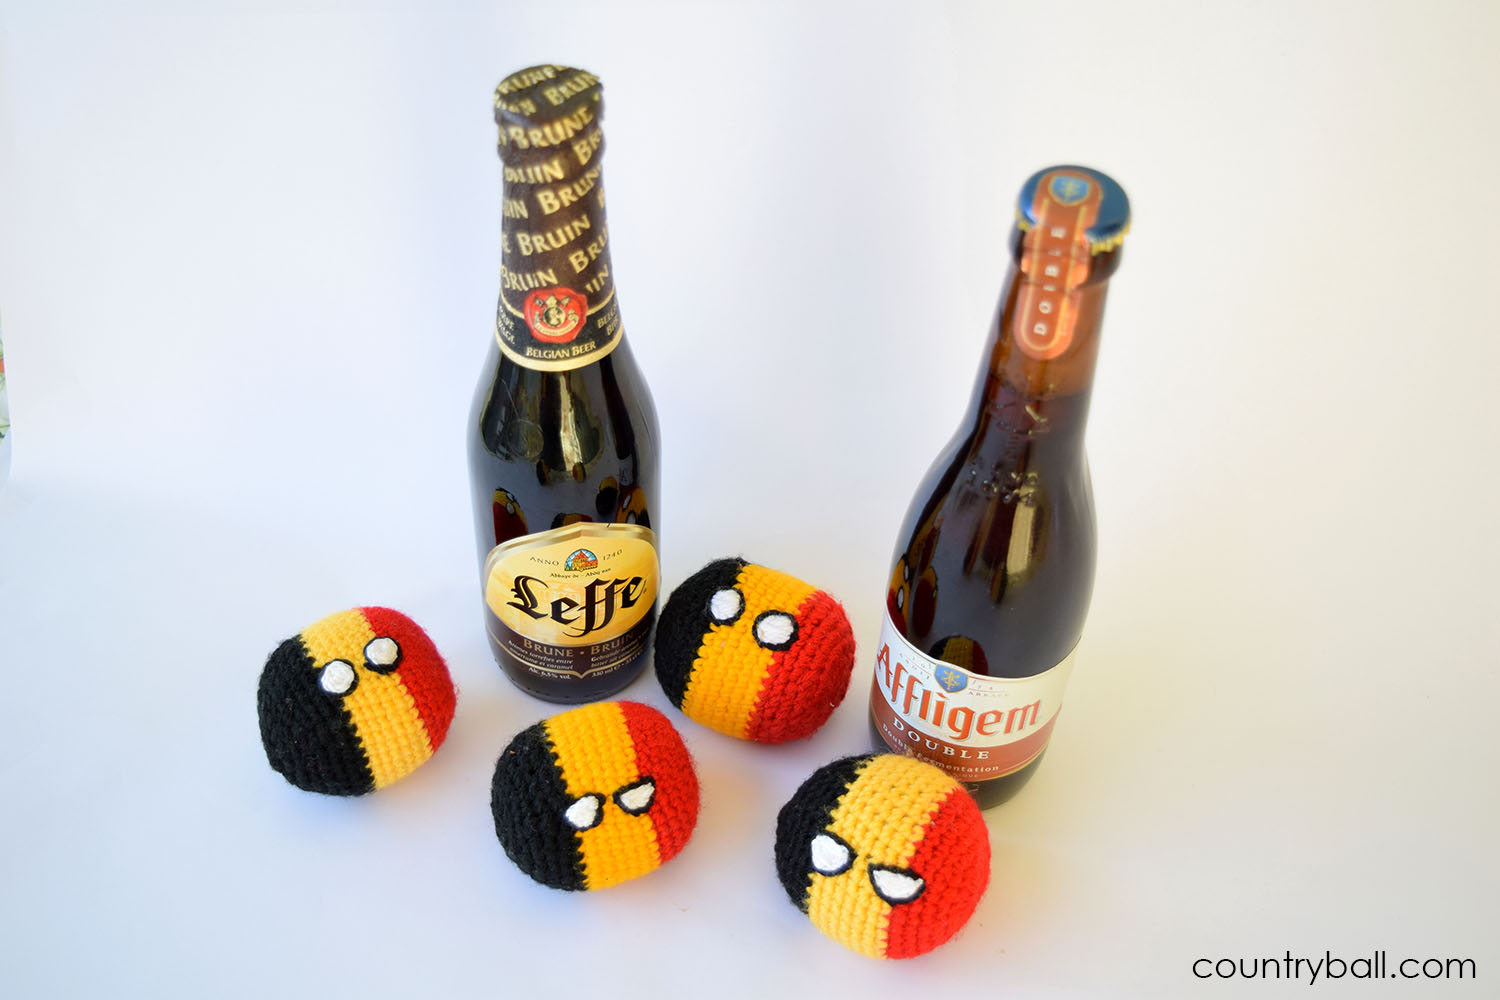 Belgiumball with some Belgian Beer